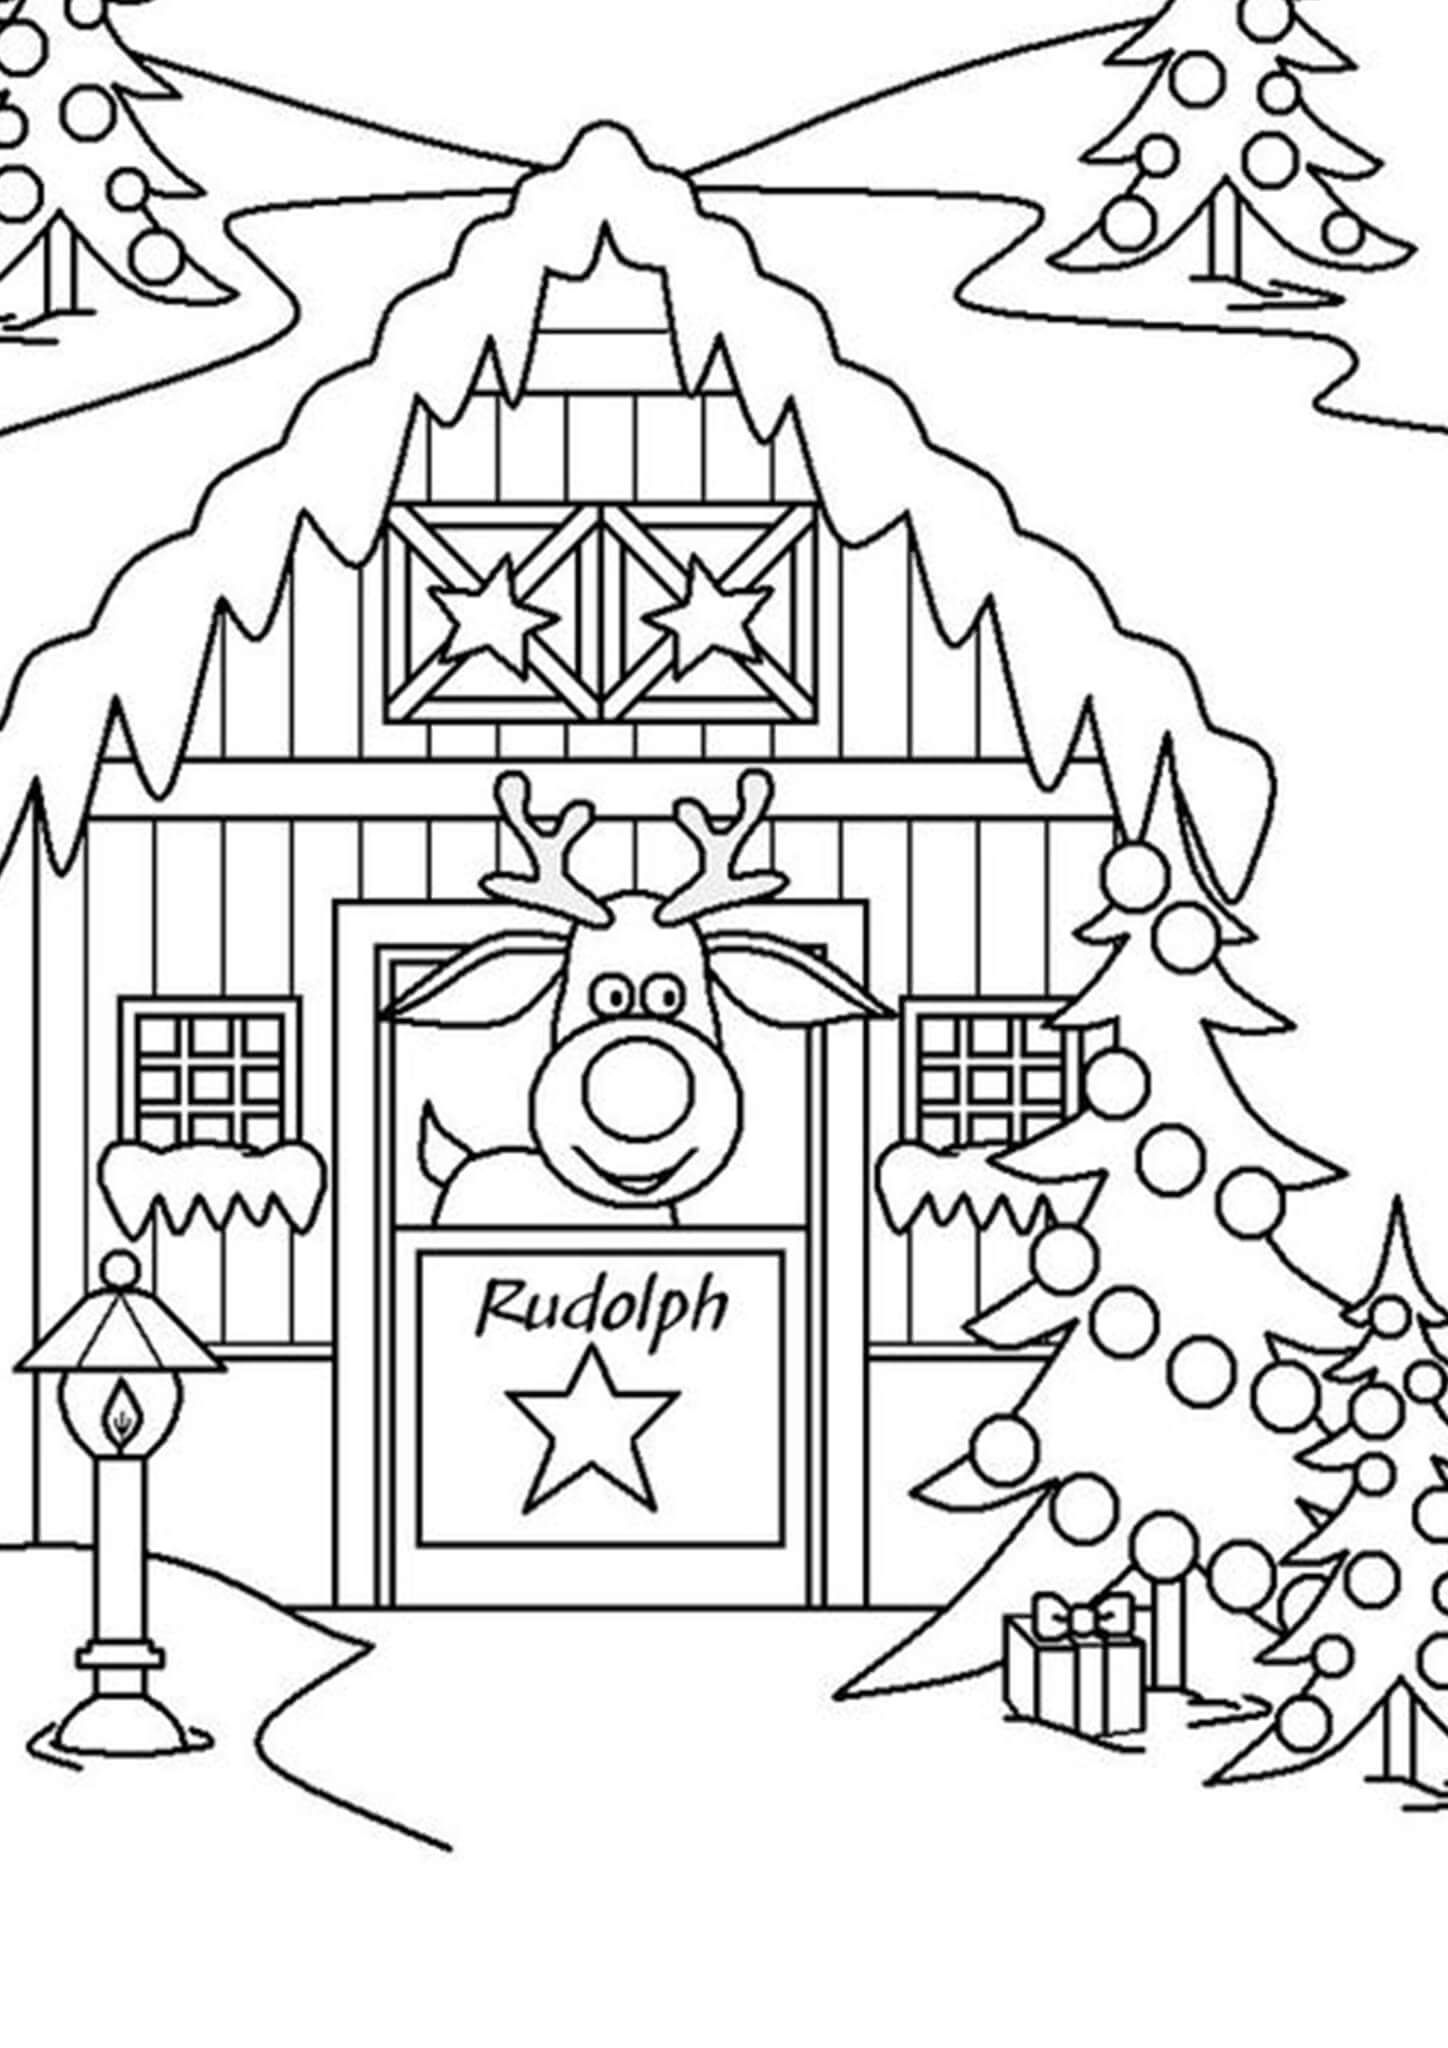 Rudolph The Red Nosed Reindeer Coloring Pages Printable Christmas Coloring Pages Coloring Pages Christmas Coloring Pages